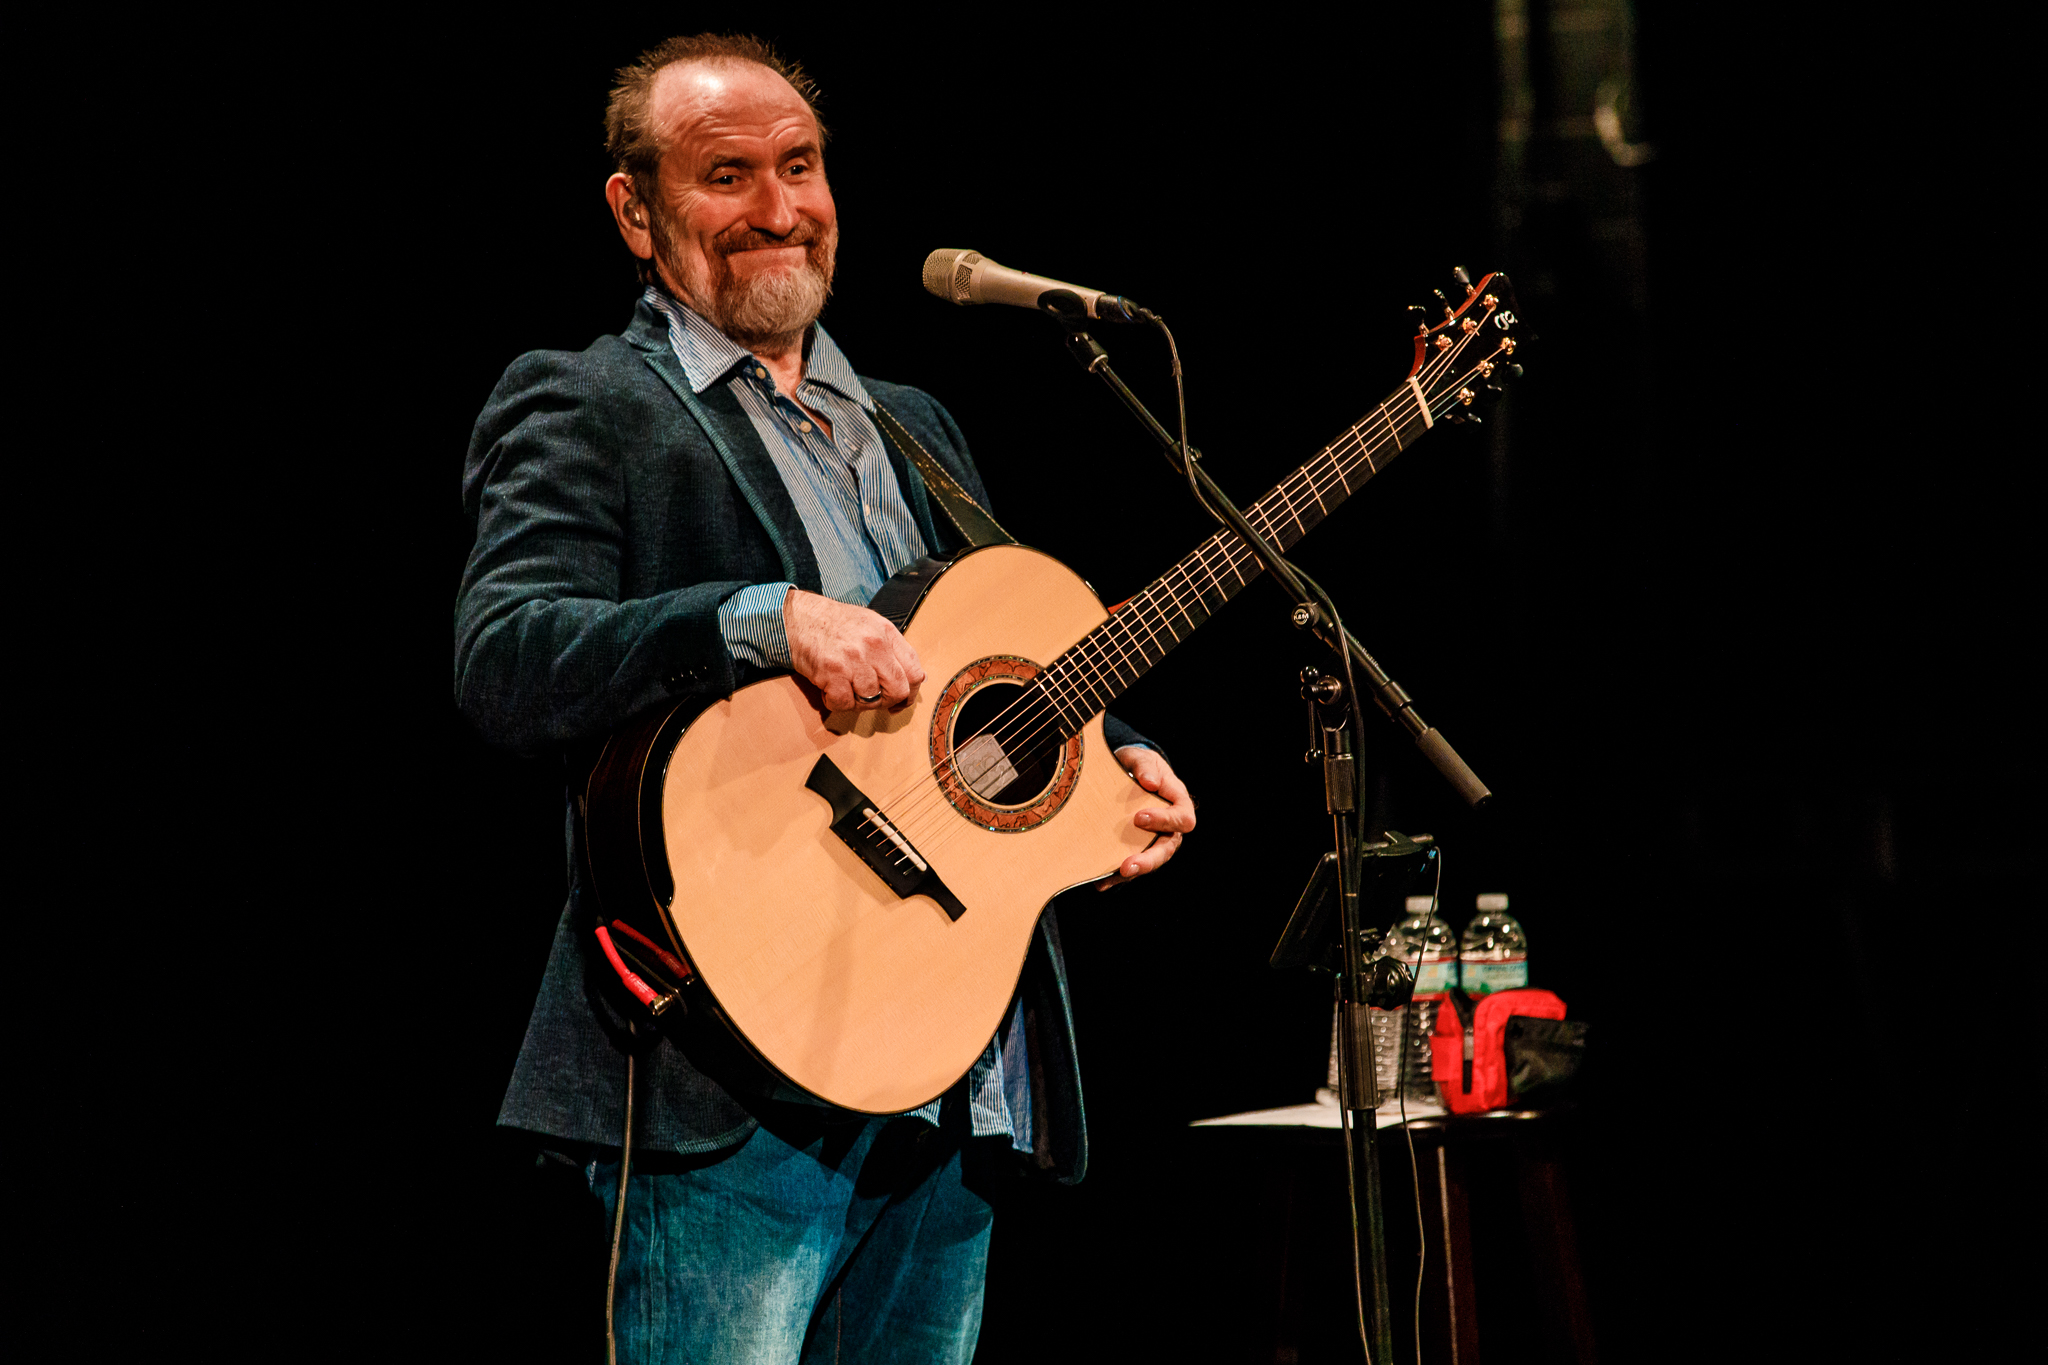 Colin Hay performing at the Lincoln Theatre in Washington, DC - 10/21/2017 (photo by Matt Condon / @arcane93)